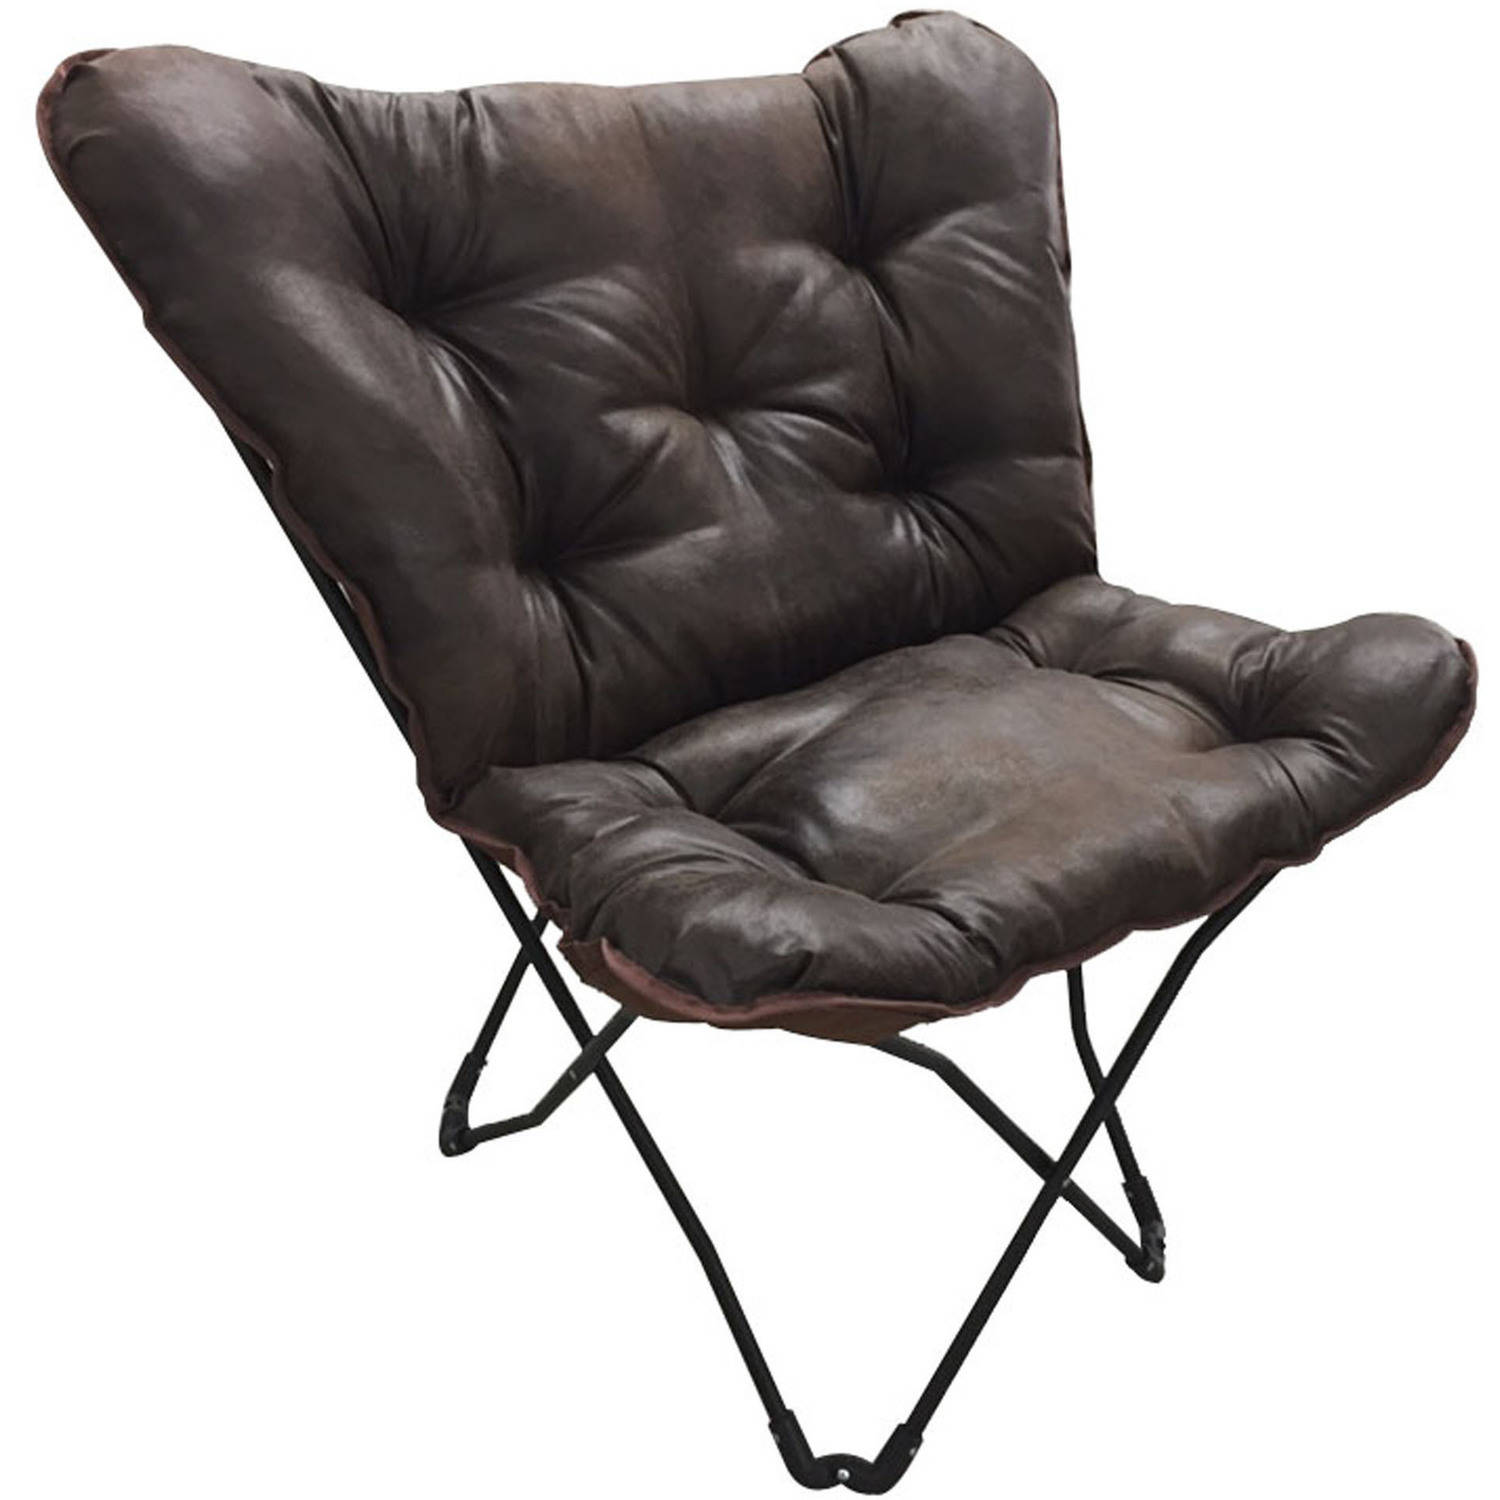 Bon Mainstays Soft Faux Leather Butterfly Chair   Brown   Walmart.com